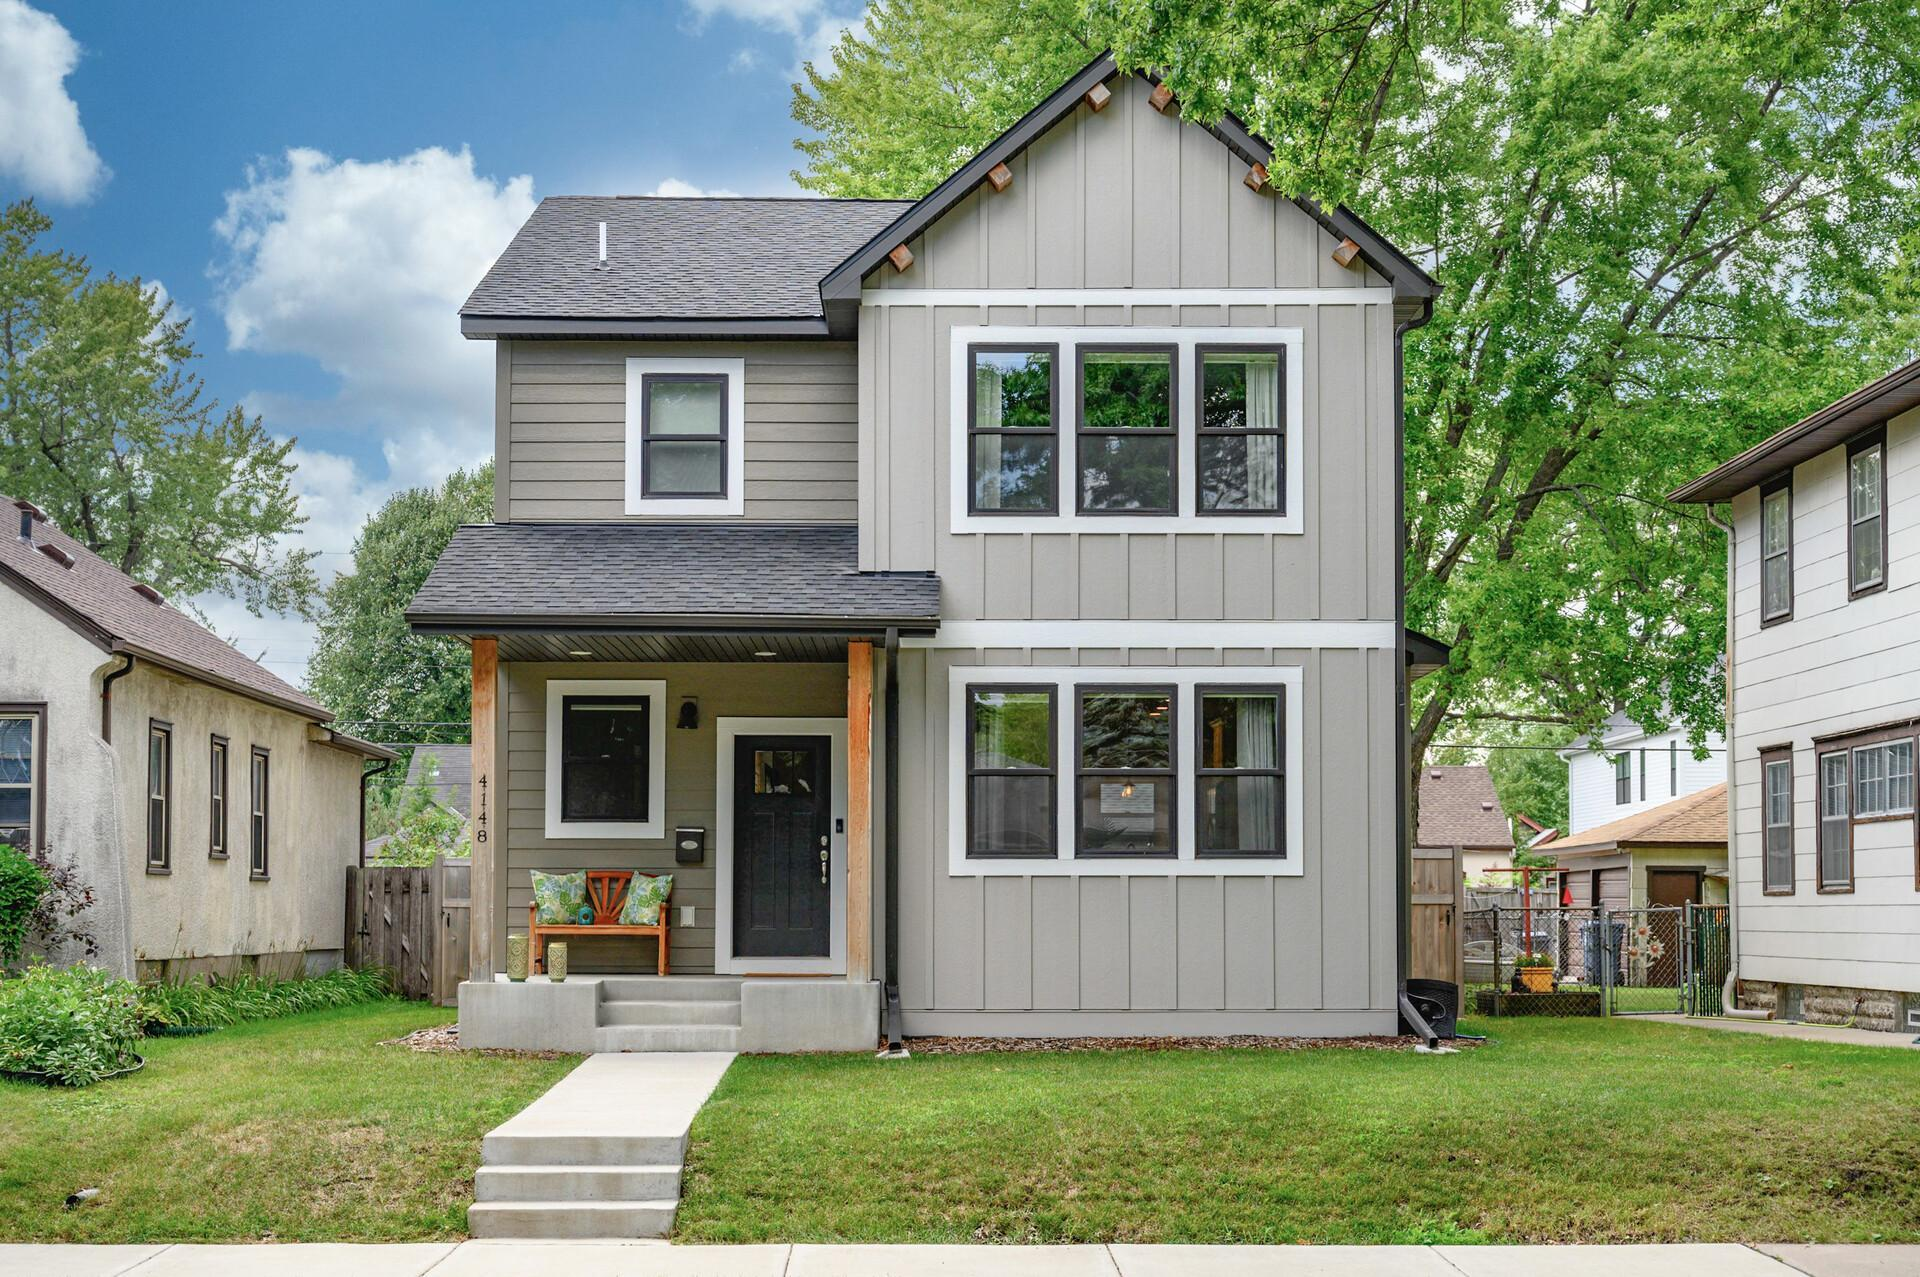 4148 45th Avenue S Property Photo - Minneapolis, MN real estate listing